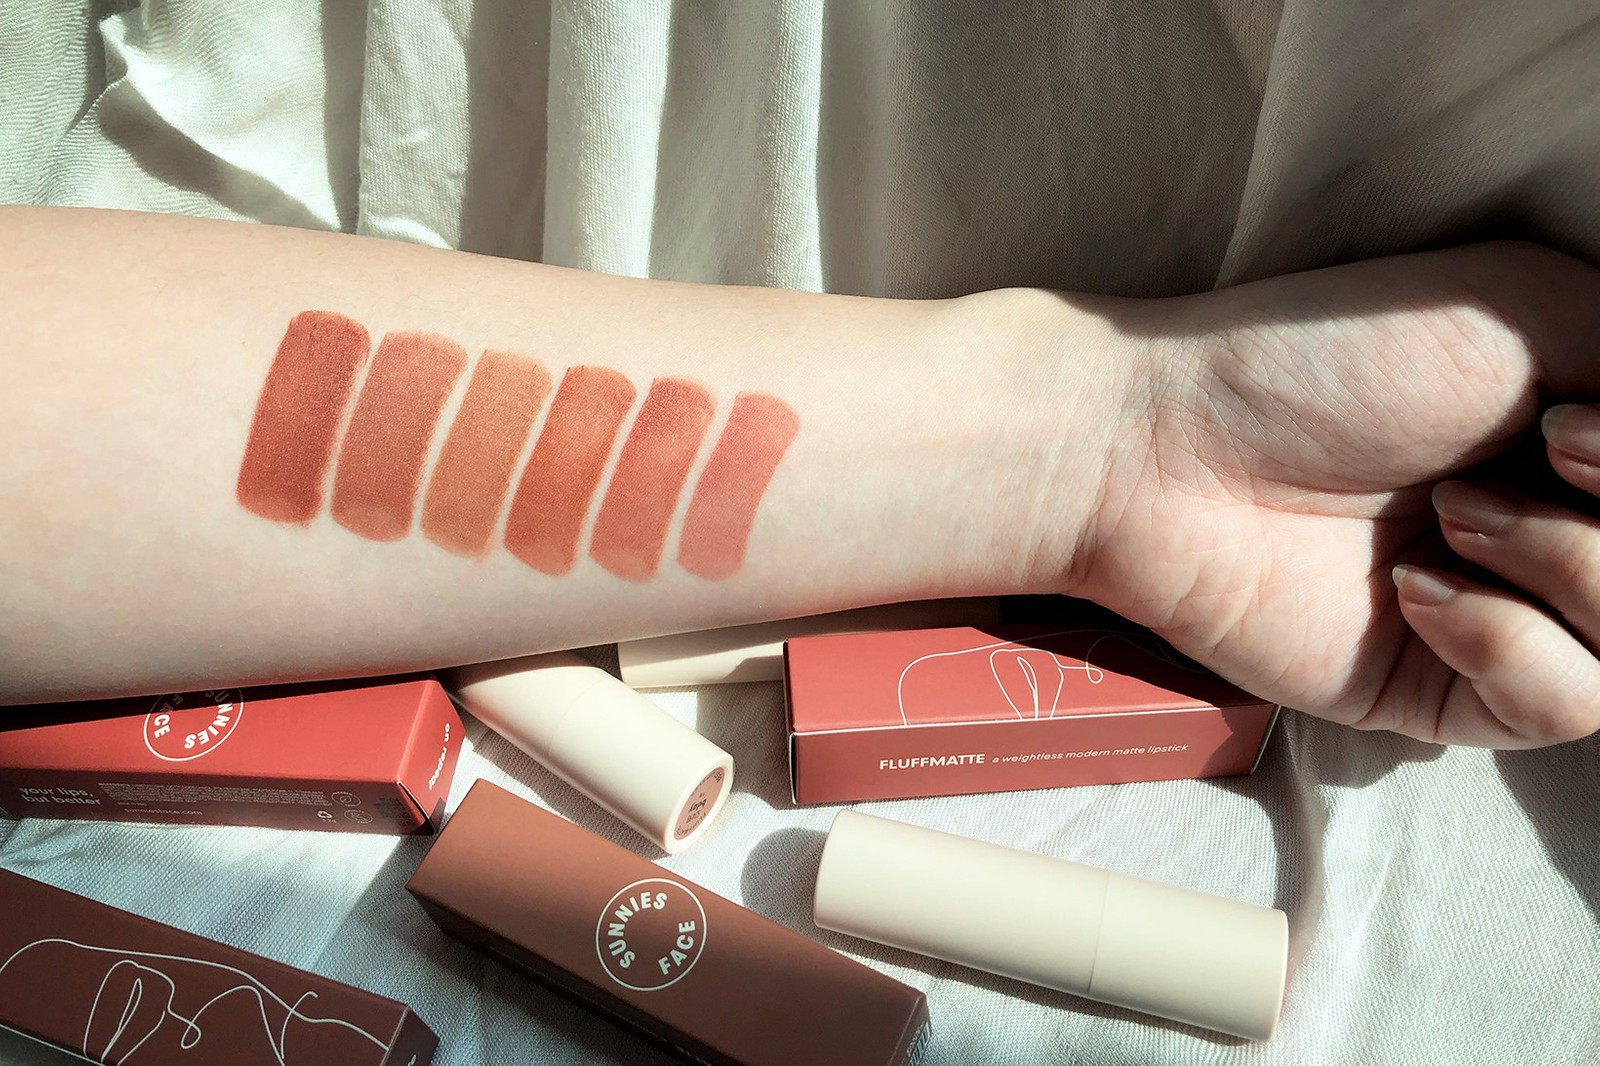 sunnies face nudeish fluffmatte collection lipsticks makeup philippines beauty cosmetics nude